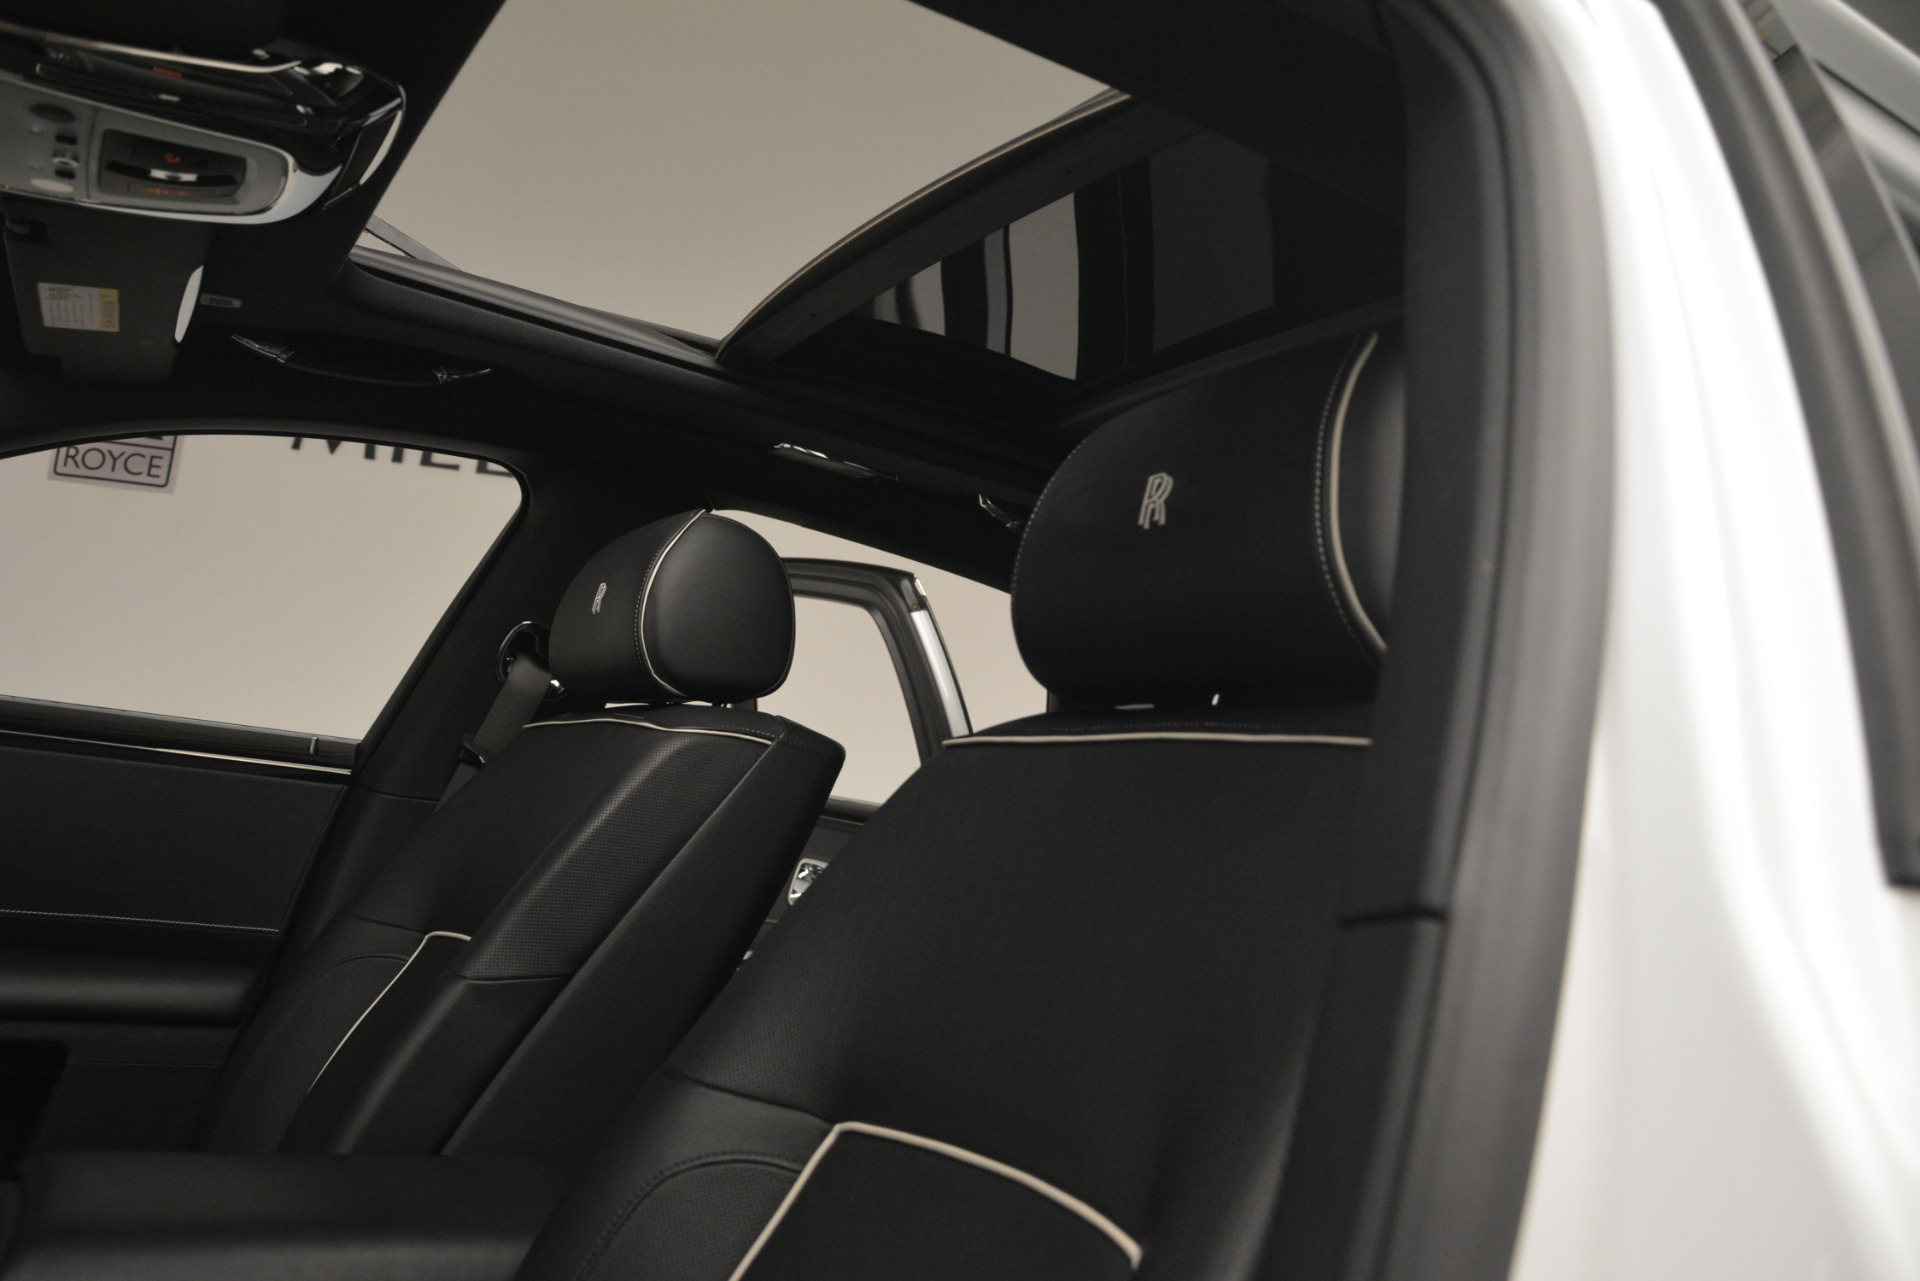 Used 2014 Rolls-Royce Ghost V-Spec For Sale In Greenwich, CT 2989_p15